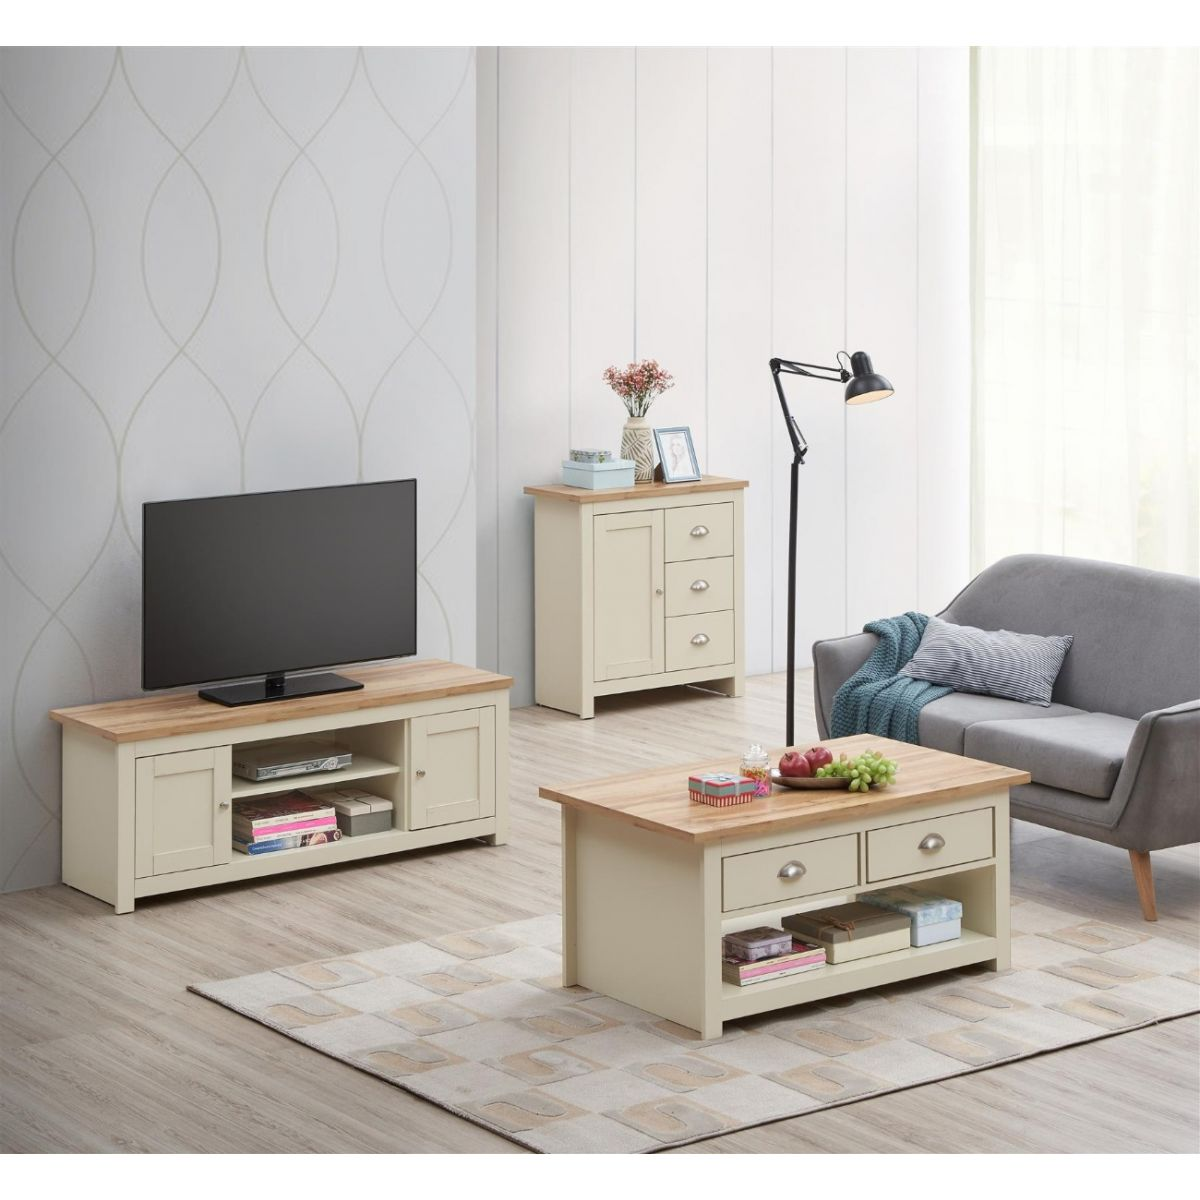 3 PIECE LIVING ROOM SET (2 DOOR TV UNIT, 1 DOOR SIDEBOARD, 2 DRAWER COFFEE TABLE)